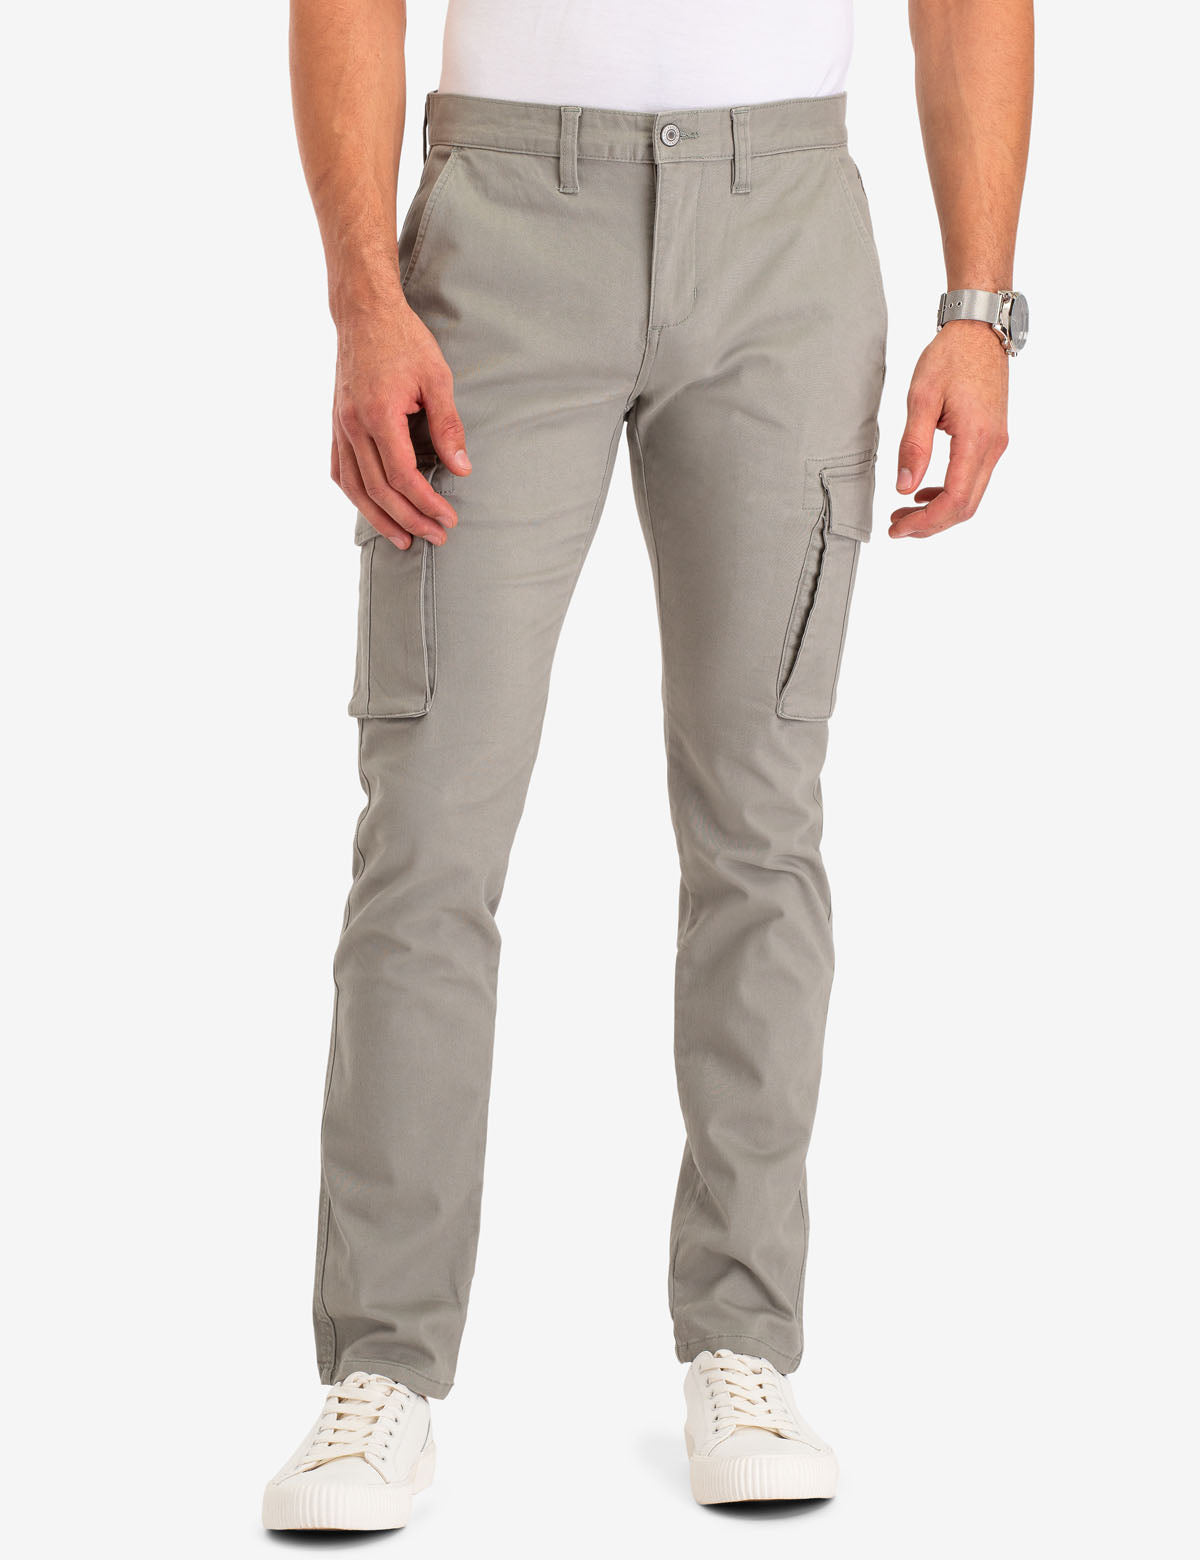 SLIM STRAIGHT CARGO PANTS - U.S. Polo Assn.